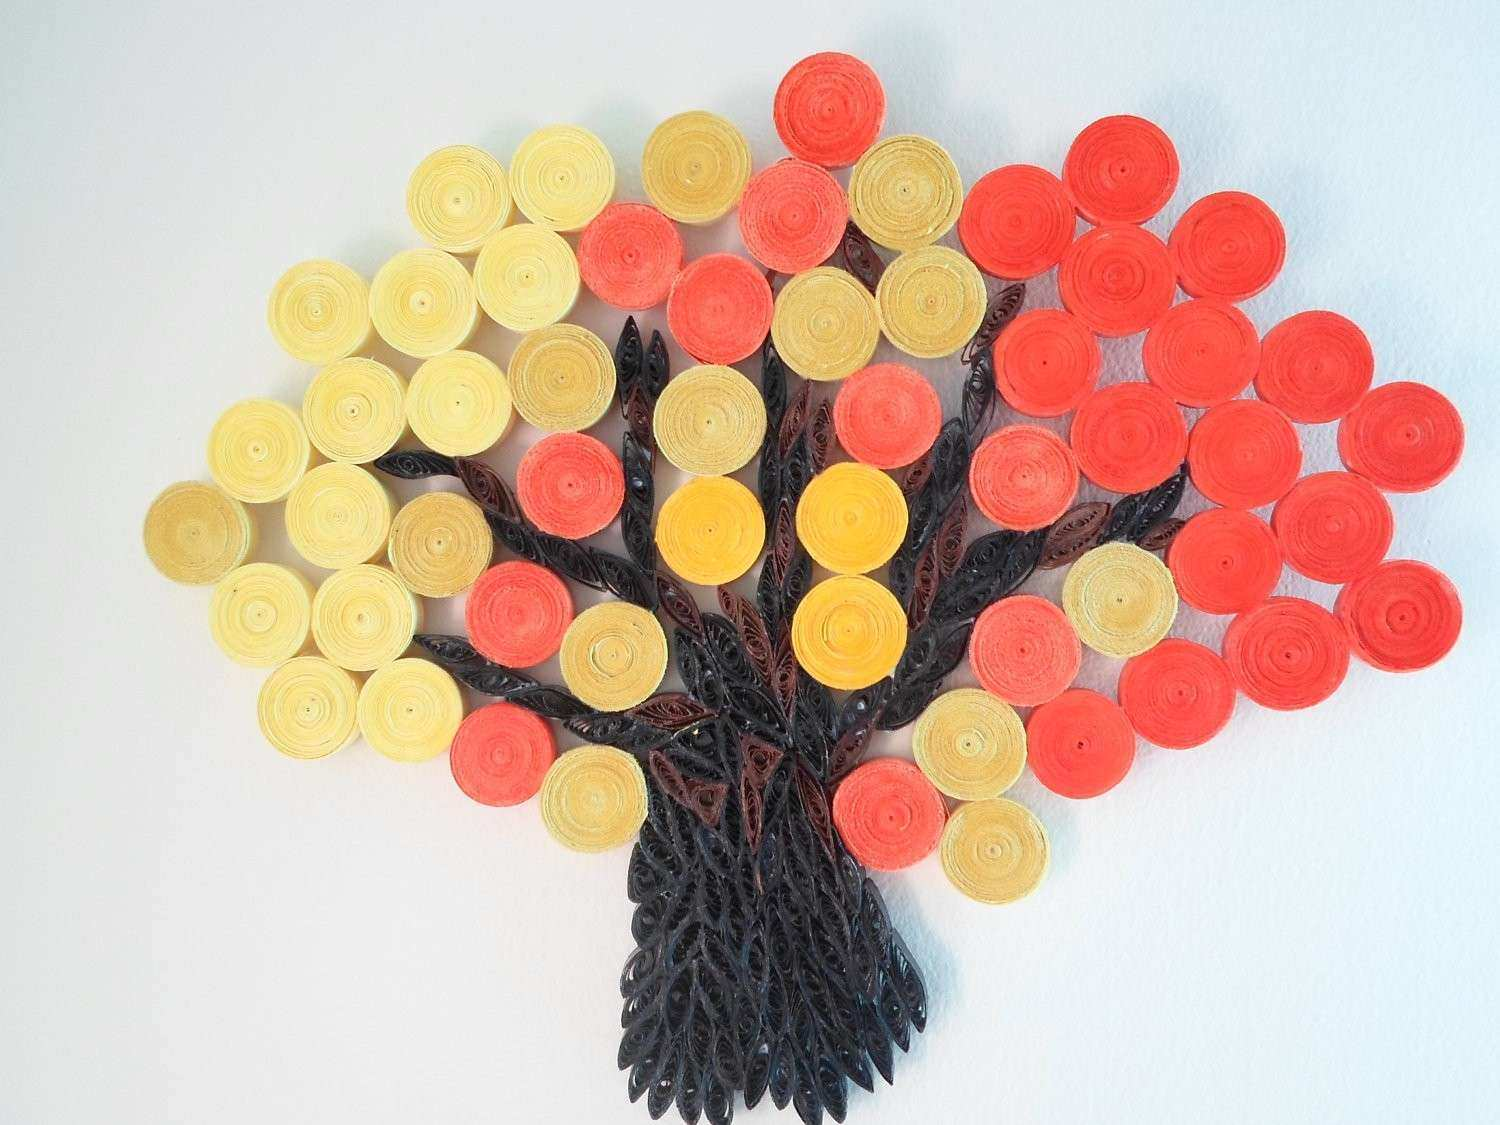 Stunning Paper Wall Decorations Contemporary - The Wall Art ...